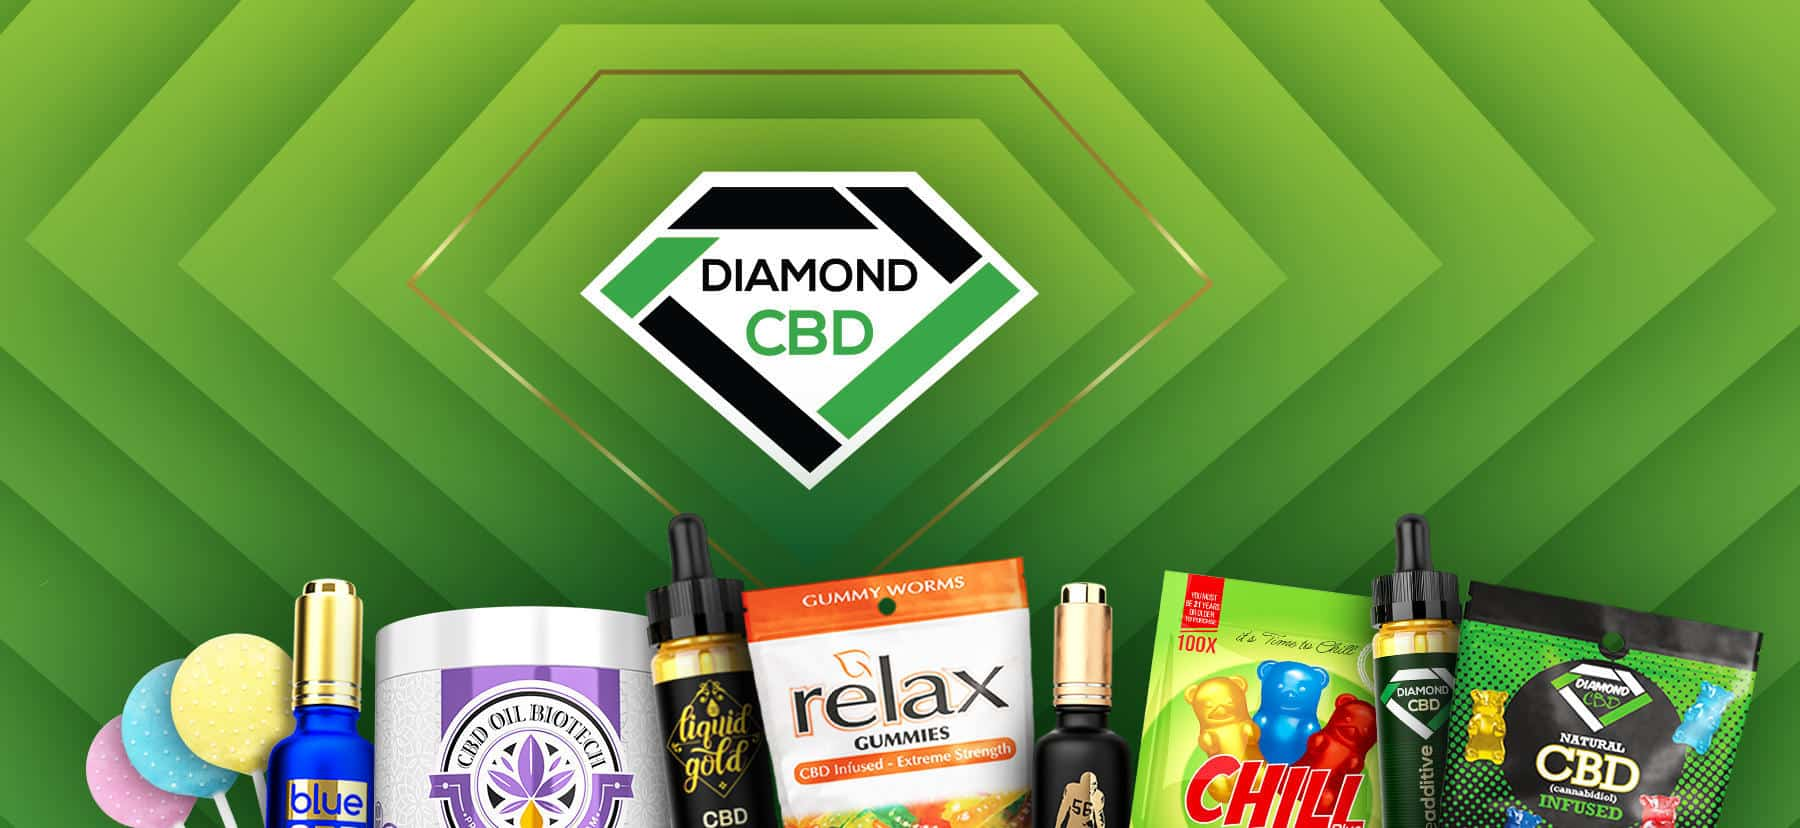 Diamond CBD Coupon Code - Online Discount - Save On Cannabis